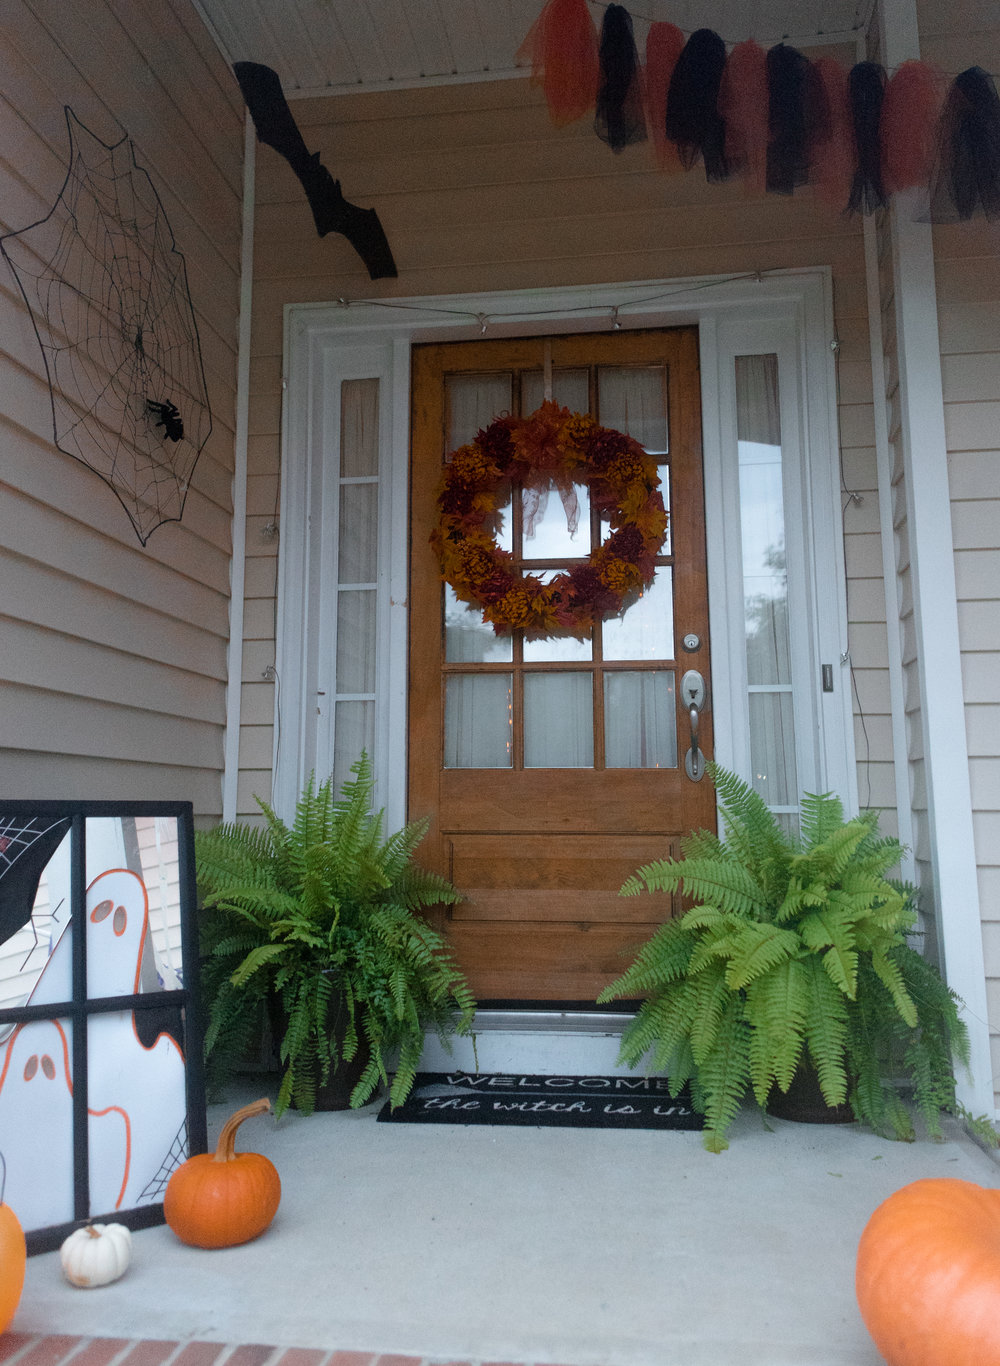 I put this fun mirror on the porch to go with the orange, black, and white theme this year! I made the bat by cutting it out of plywood and painting it black. I got the tulle idea from Pinterest as I was looking for something different to fill some ceiling space on the porch!